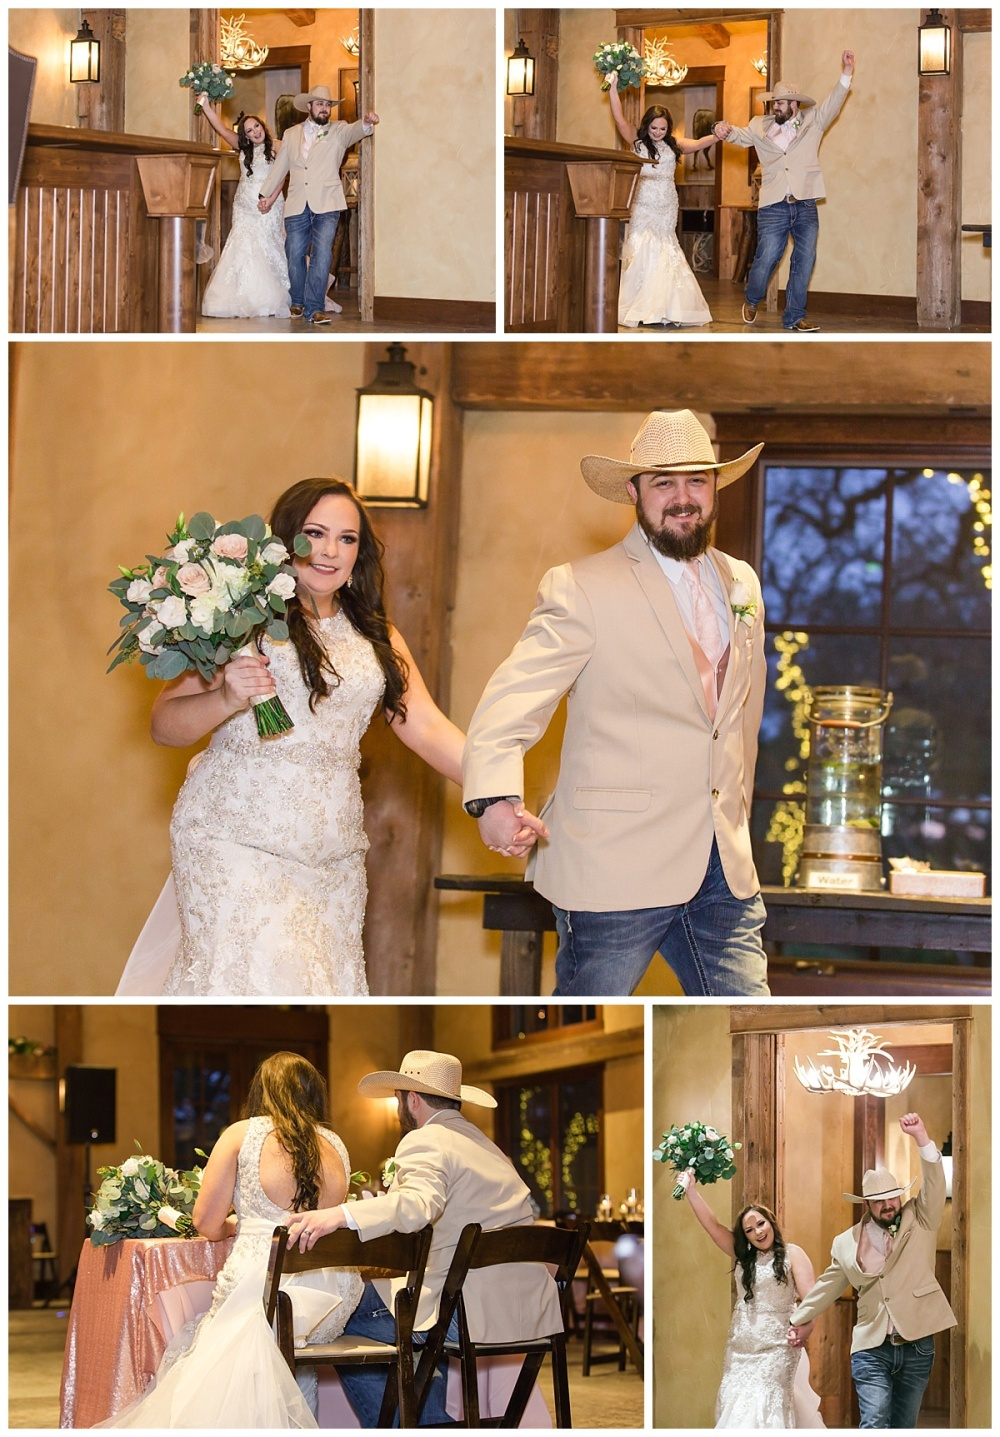 Carly-Barton-Photography-Branded-T-Ranch-Kendalia-Texas-Hill-Country-Wedding_0048.jpg